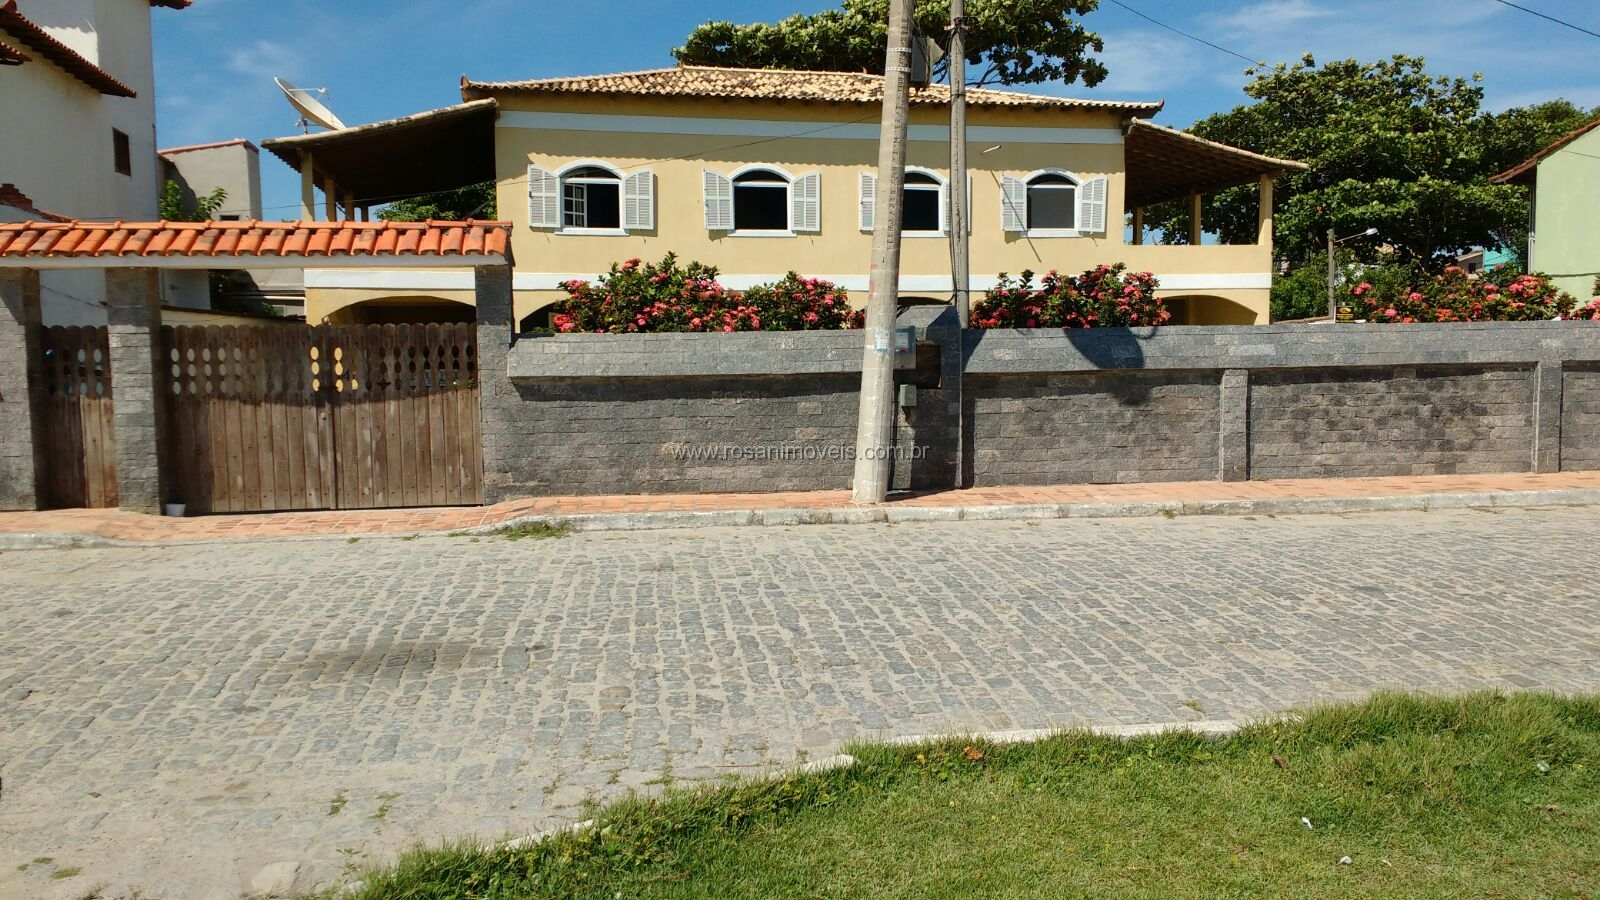 CASA TOTALMENTE INDEPENDENTE DE FRENTE PARA A LAGOA – MONTE ALTO – ARRAIAL DO CABO